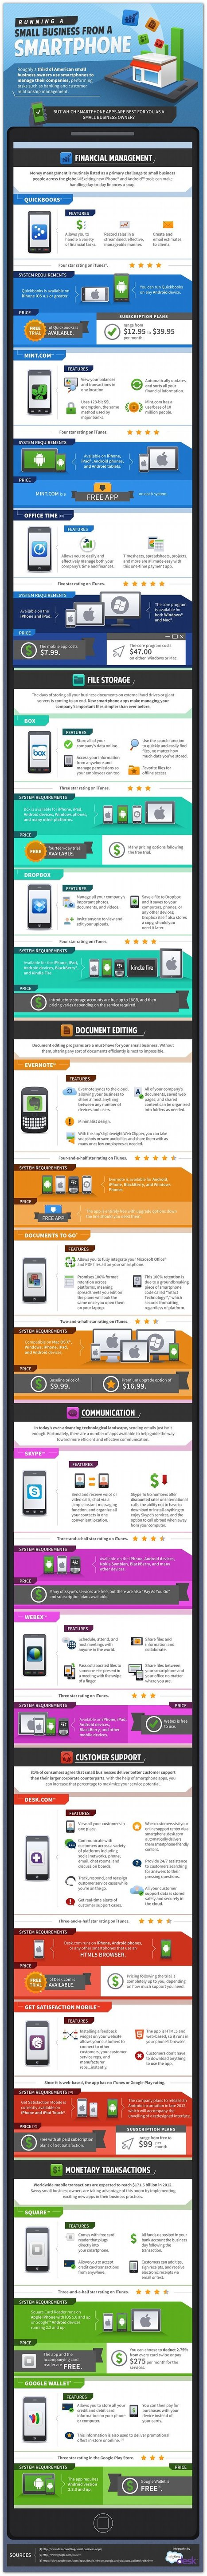 13 Business Apps for Busy Entrepreneurs (Infographic) | Online Business Made Easy | Scoop.it